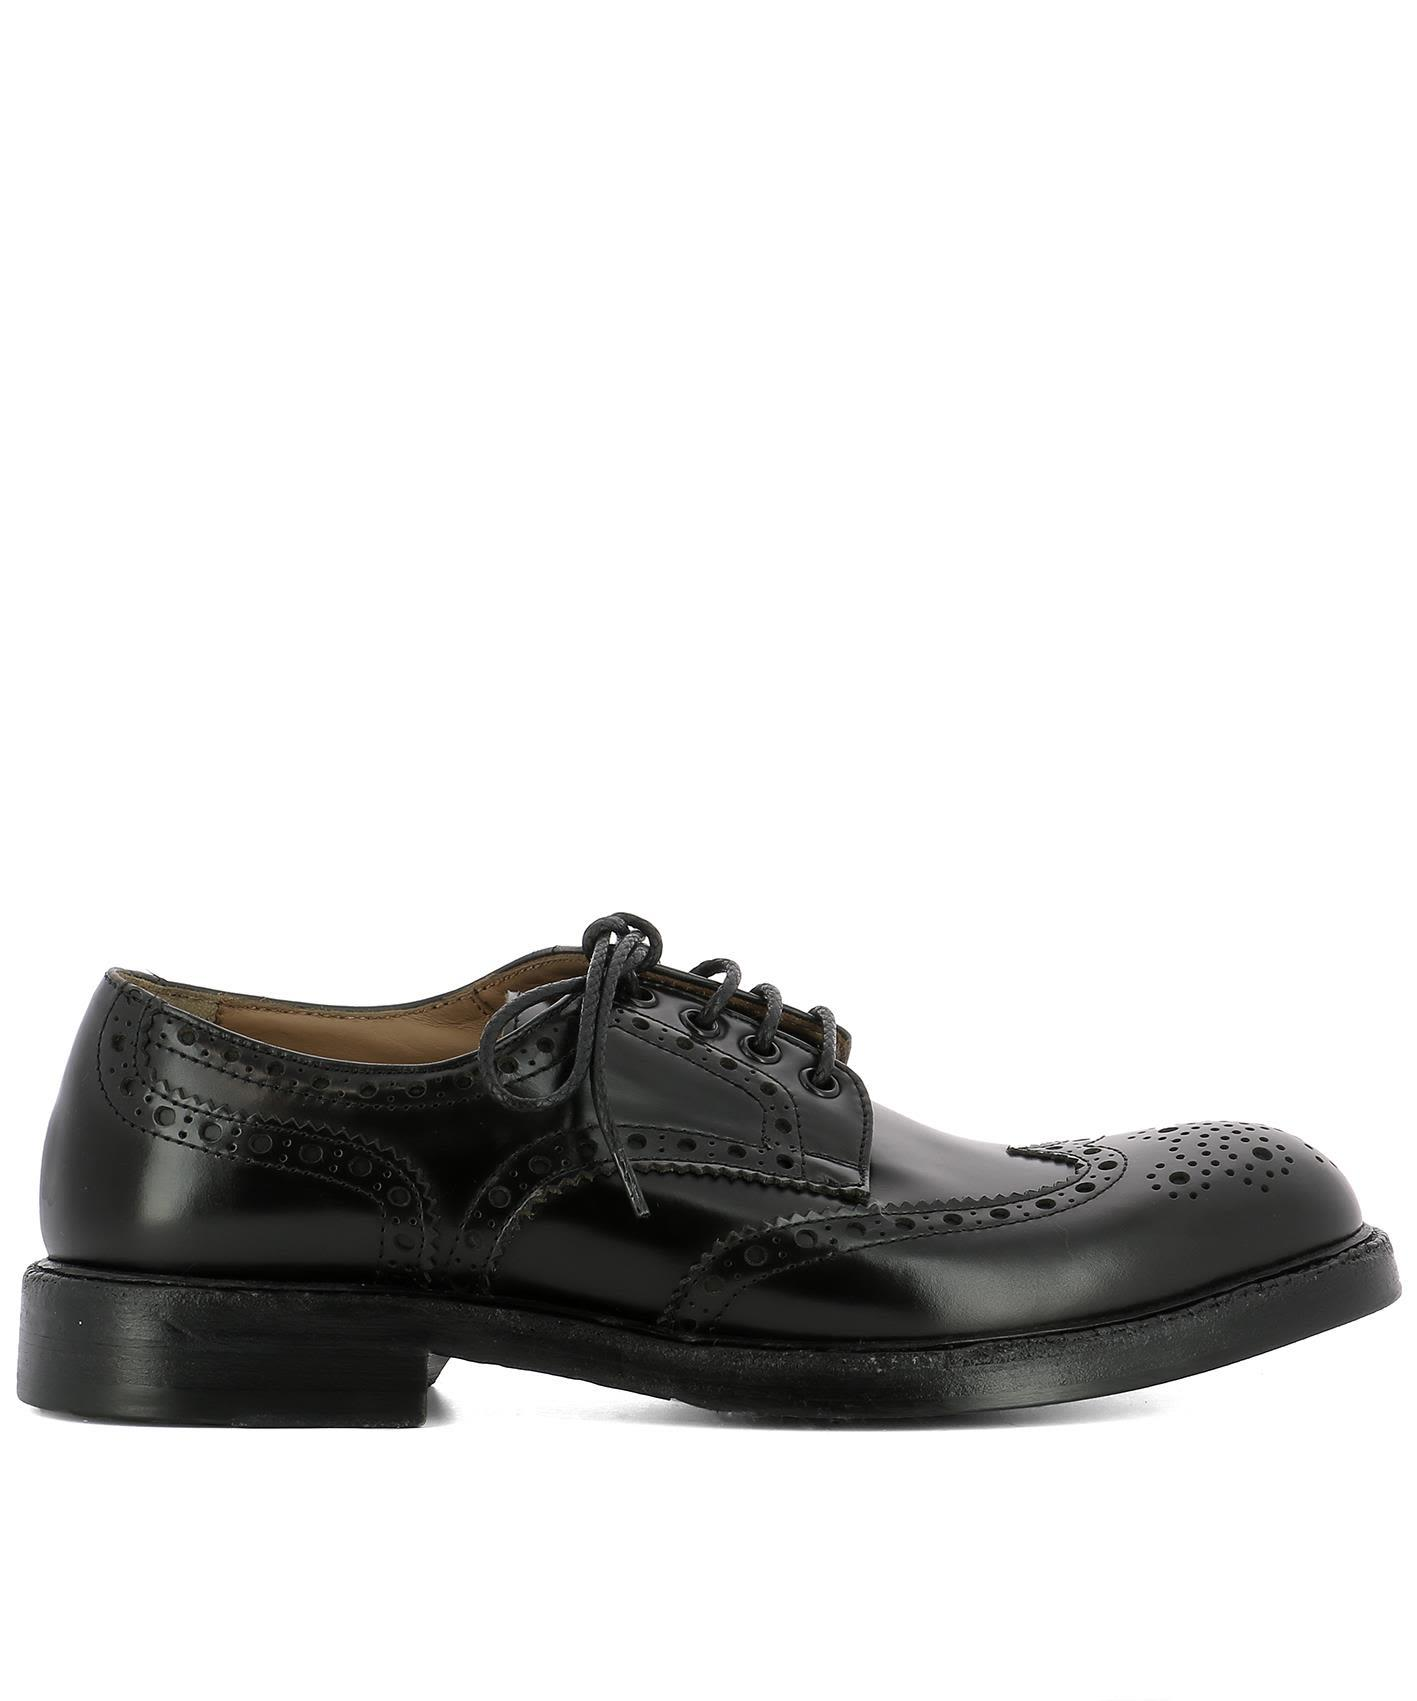 Green George Black Leather Lace-up